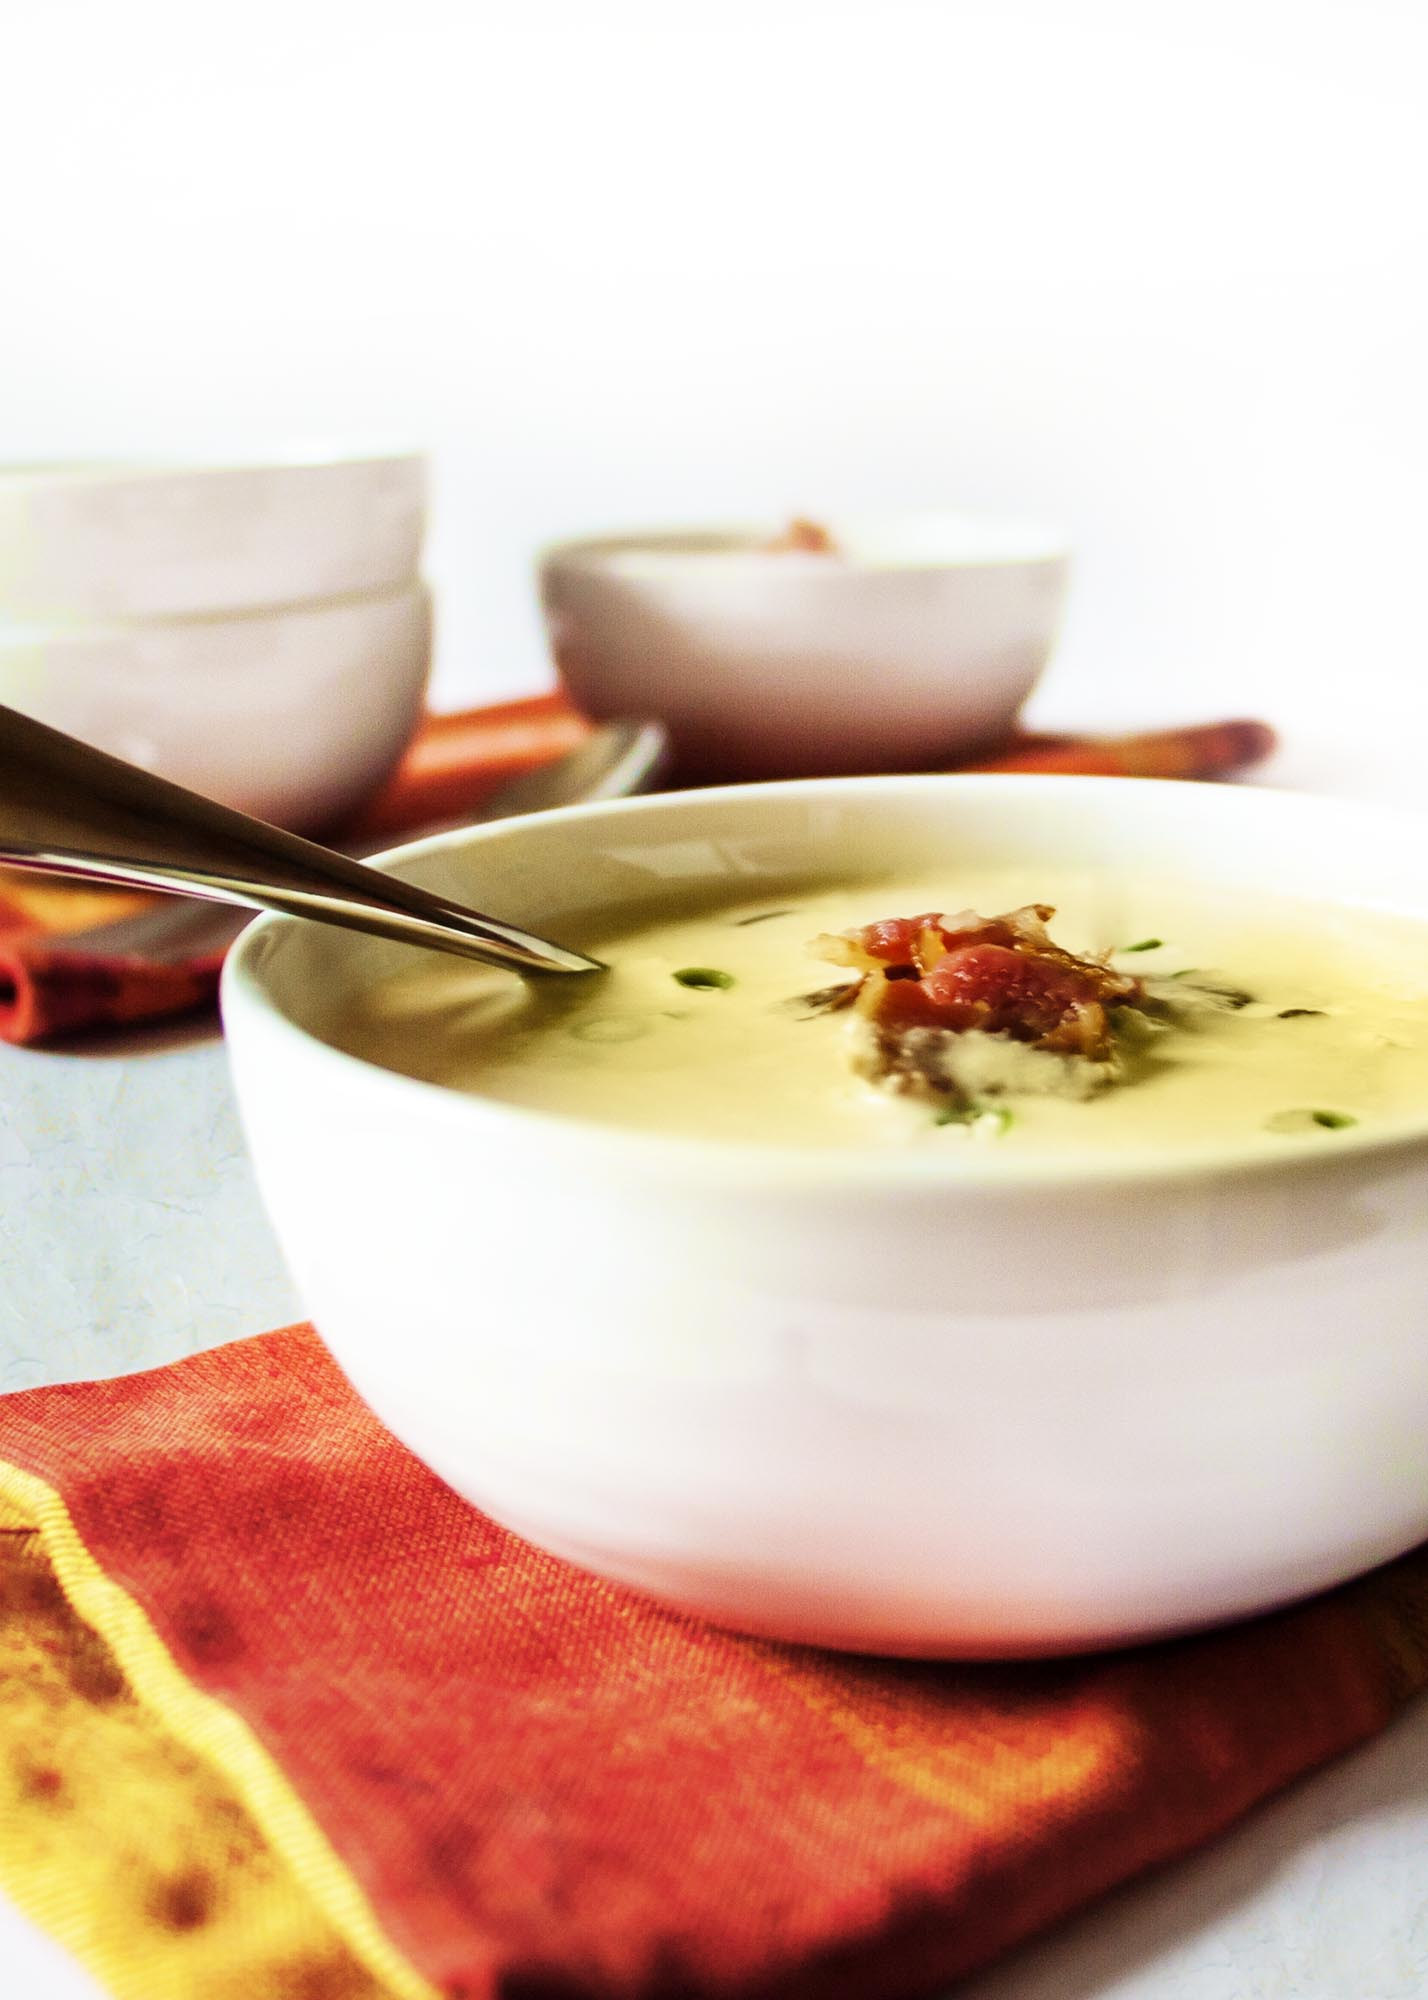 Silky Corn Soup Topped with Bacon - A stock made from corn cobs simmered with fresh, cut kernels create a soup full of corn flavor.   justalittlebitofbacon.com